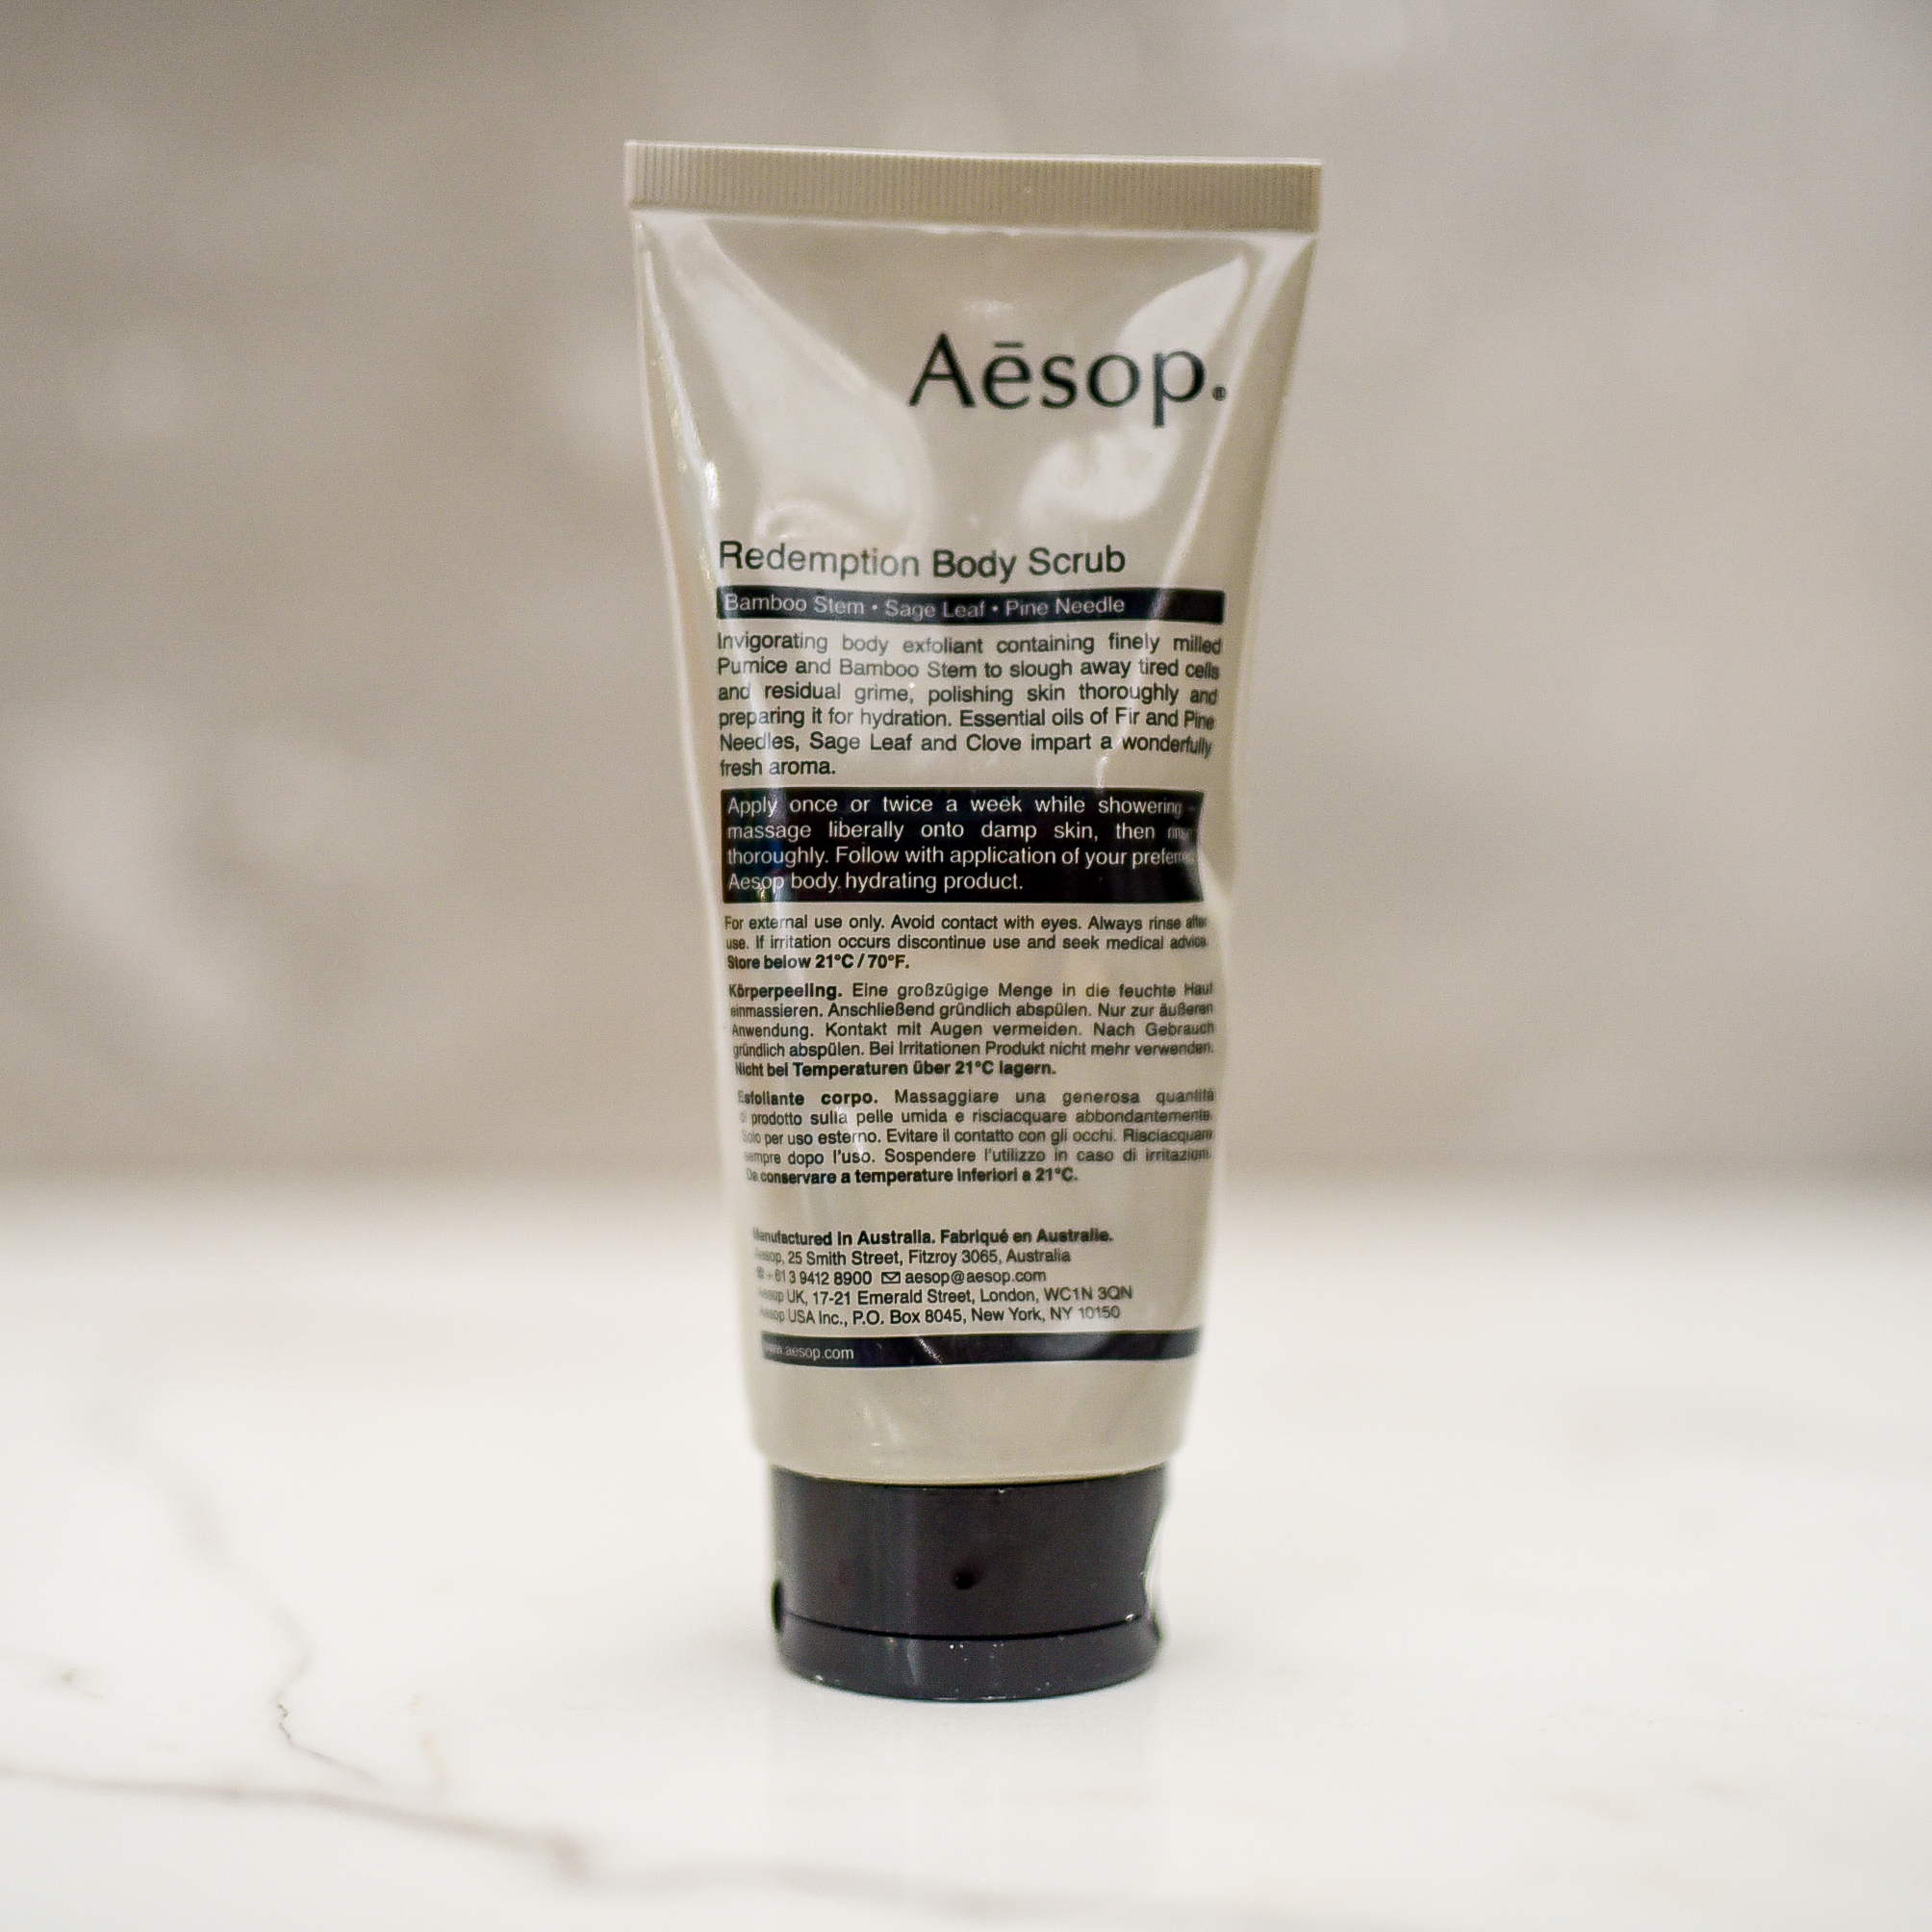 Aesop Redemption Body Scrub - GROOMING GIFT IDEAS - THE ULTIMATE GIFT LIST FOR MODERN MEN